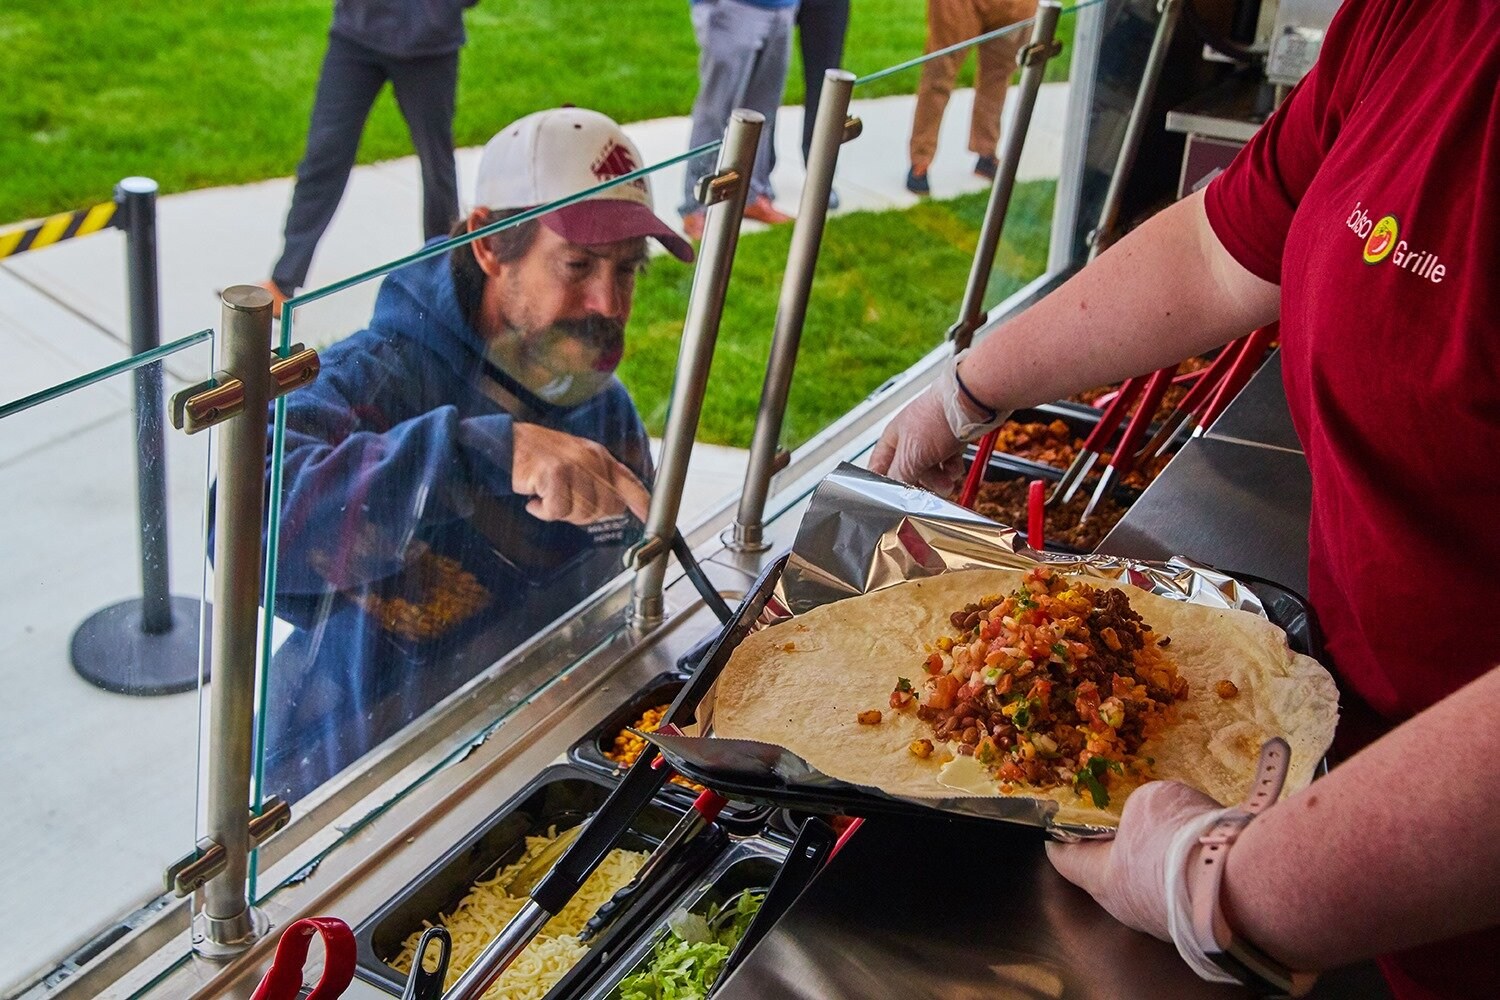 The Salsa Grille food truck serves made-to-order nachos, burritos, bowls, tacos, and more.